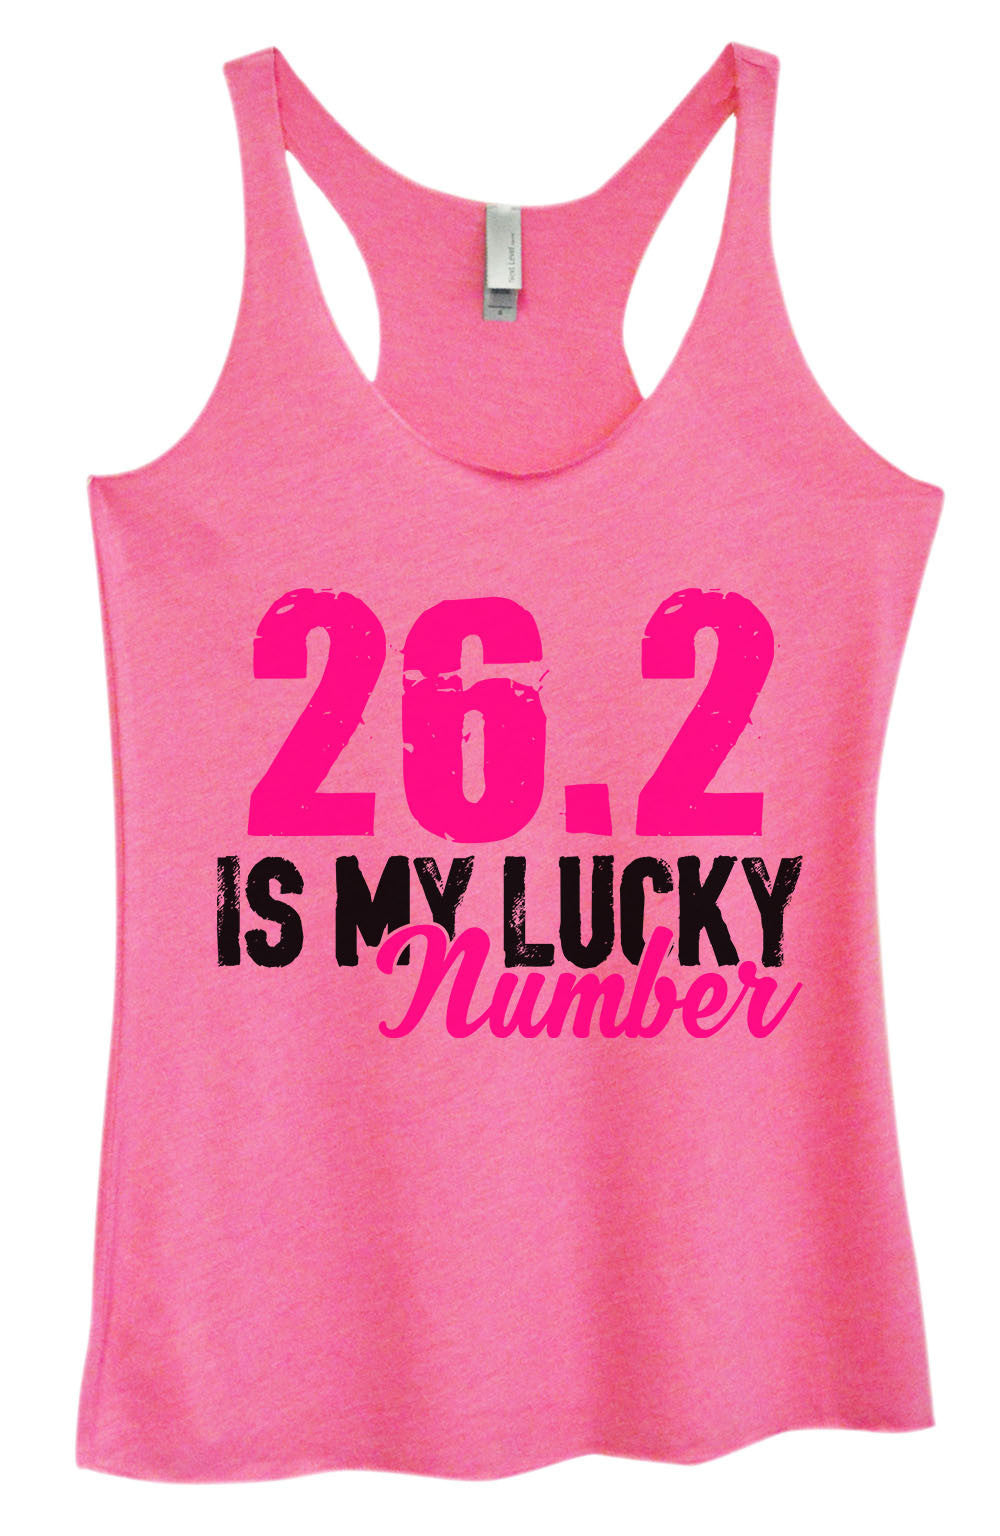 Womens Fashion Triblend Tank Top - 26.2 Is My Lucky Number - Tri-1382 - Funny Shirts Tank Tops Burnouts and Triblends  - 4